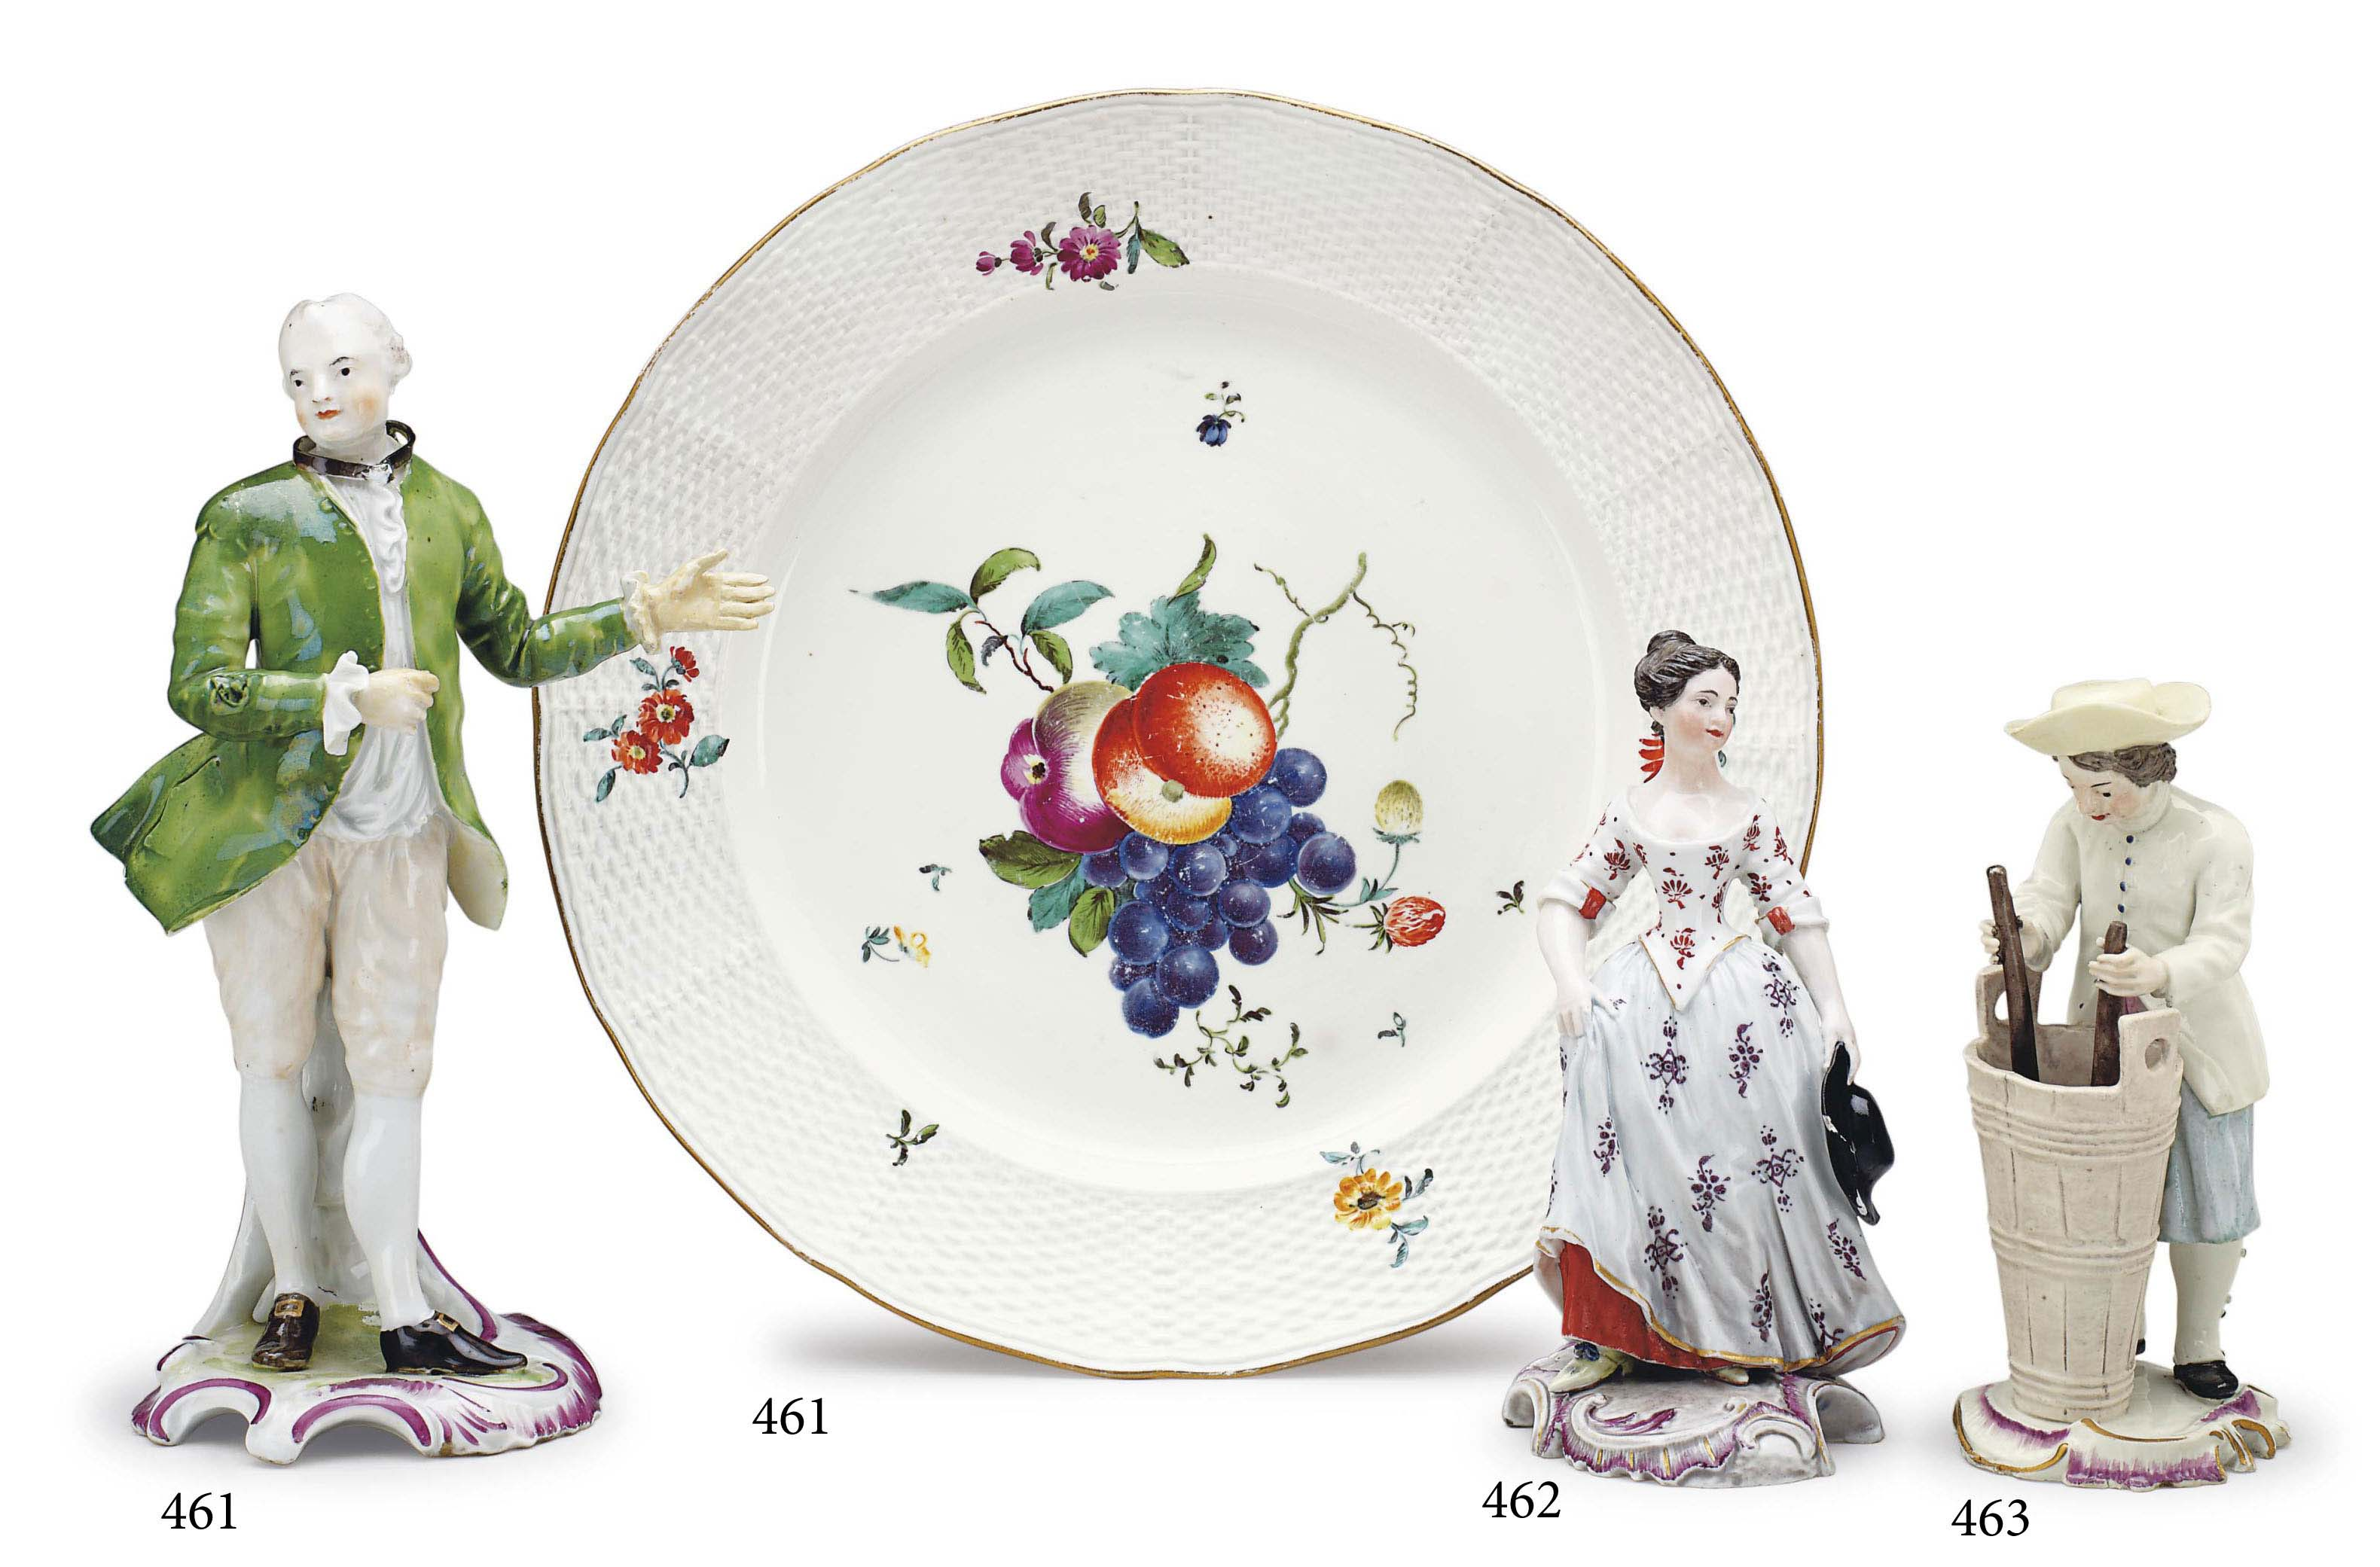 A FRANKENTHAL PORCELAIN FIGURE OF A GALLANT AND A PLATE